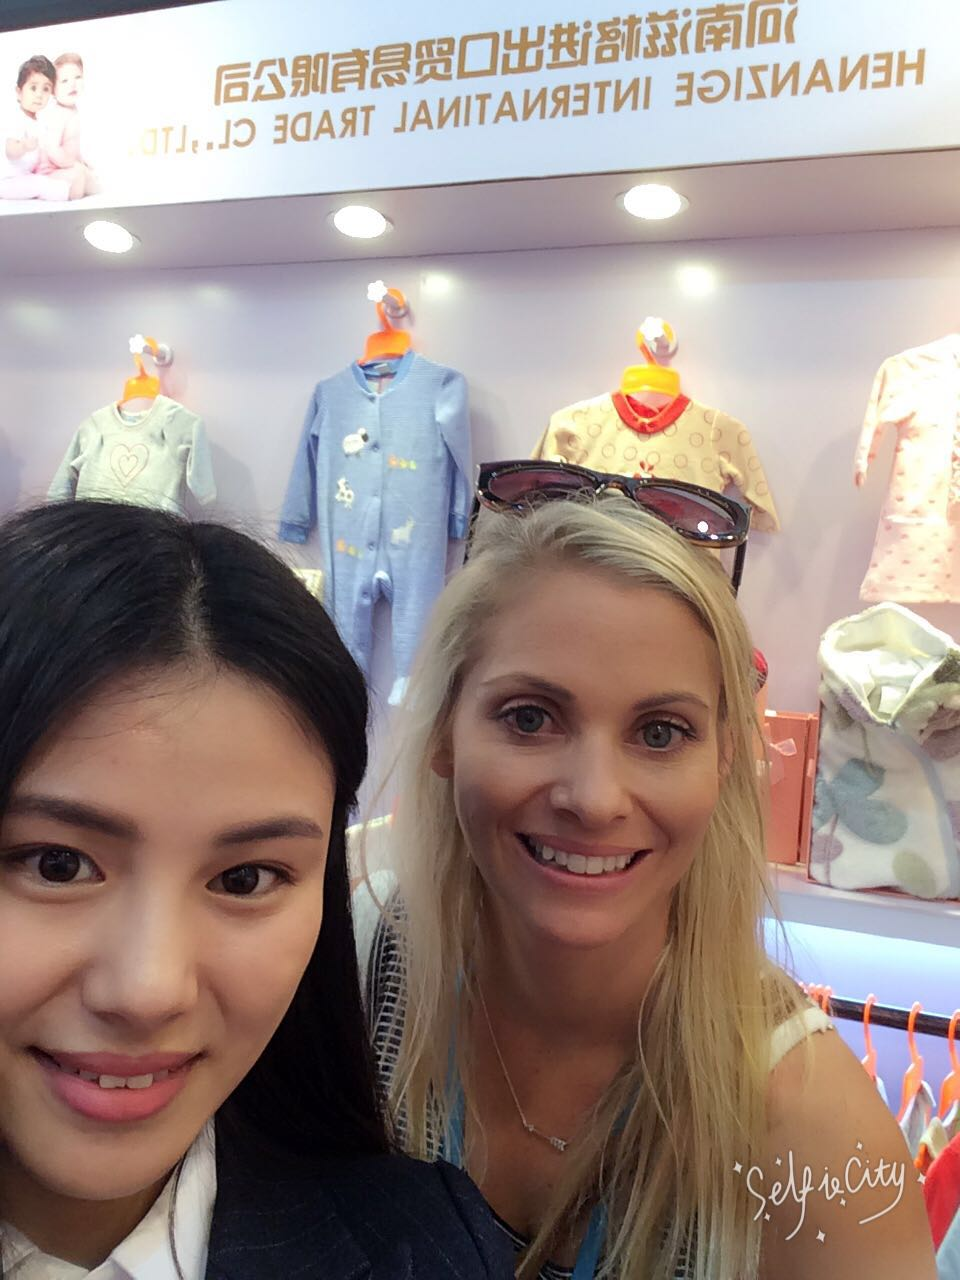 """In May 2017, Henan ZIGE import and export trade co., LTD. Participated in the """"The China Import and Export Fair"""